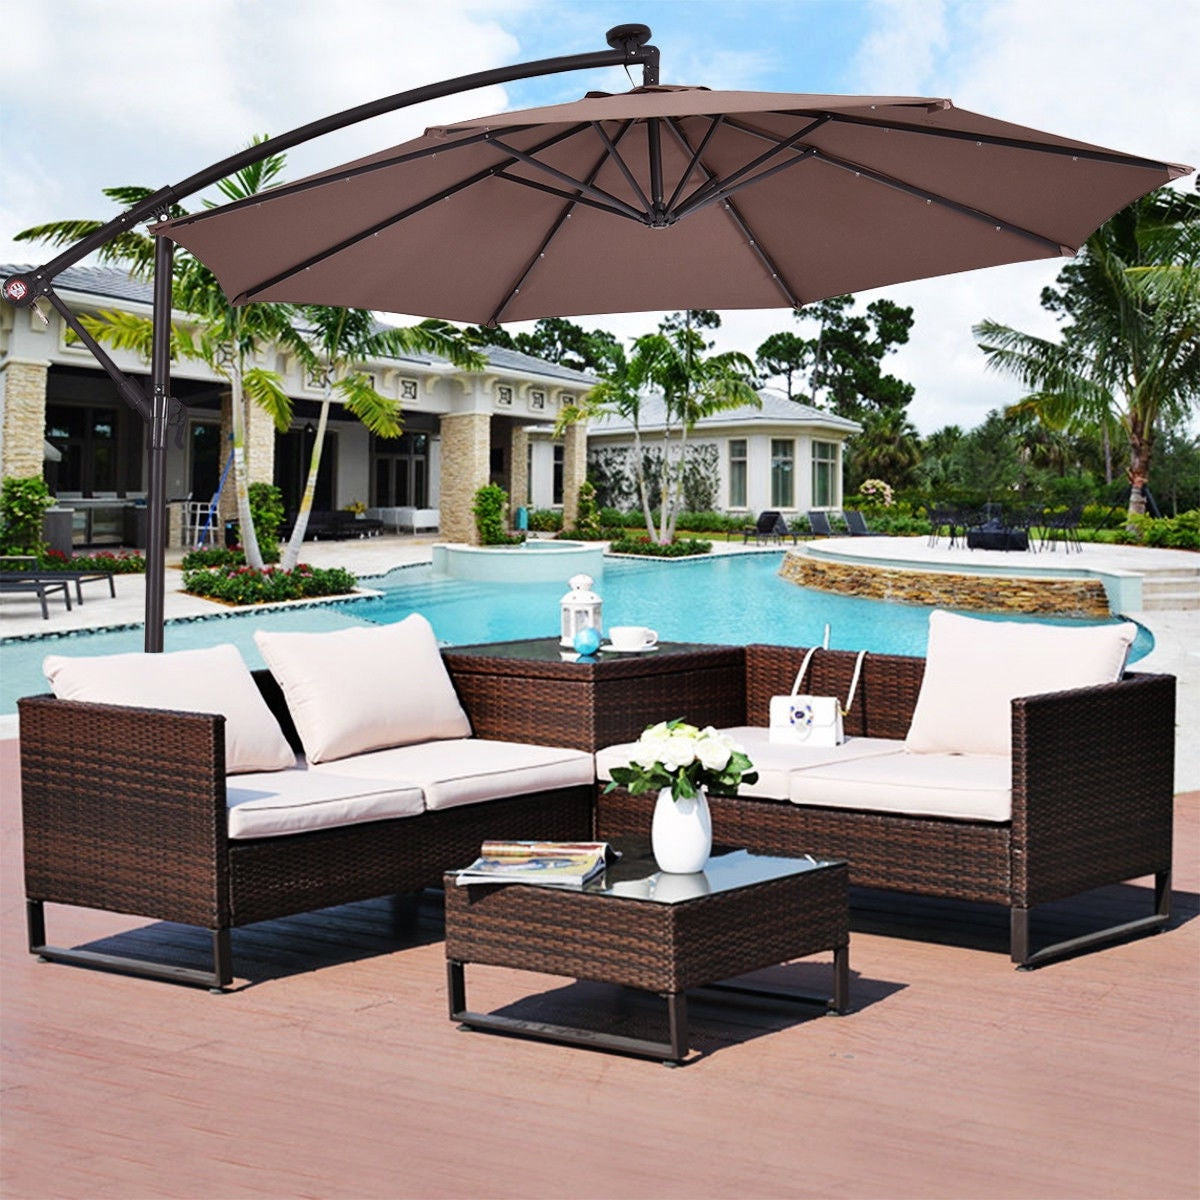 Costway 10' Hanging Solar Led Umbrella Patio Sun Shade Offset Market W/base  Tan Pertaining To Widely Used Sun Ray Solar Cantilever Umbrellas (View 2 of 20)